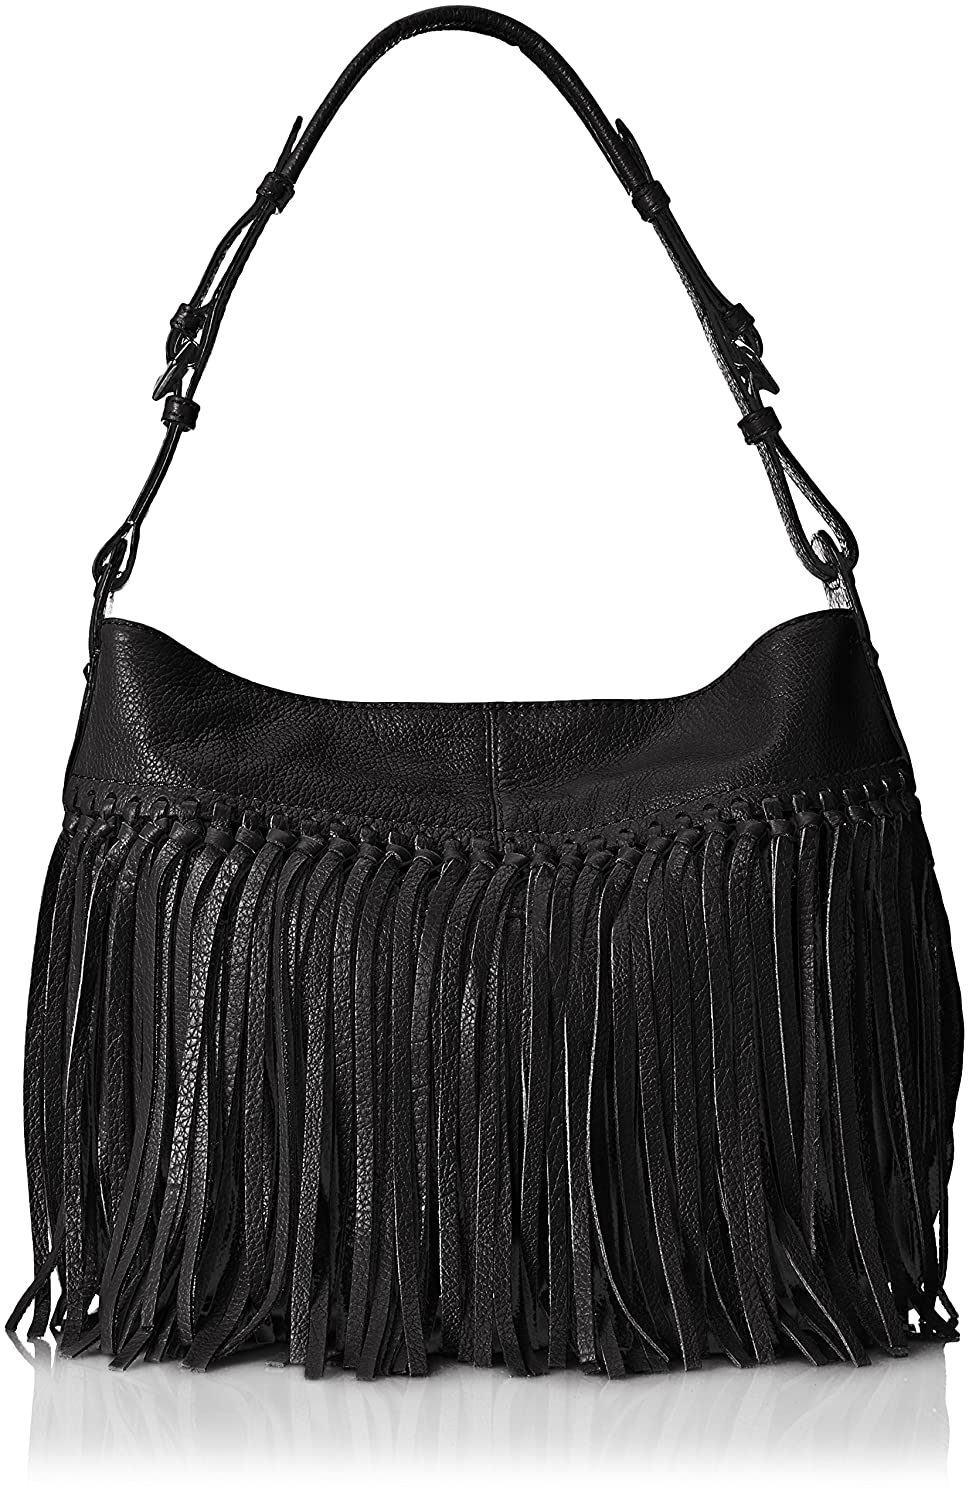 orYANY Josie Hobo Shoulder Bag